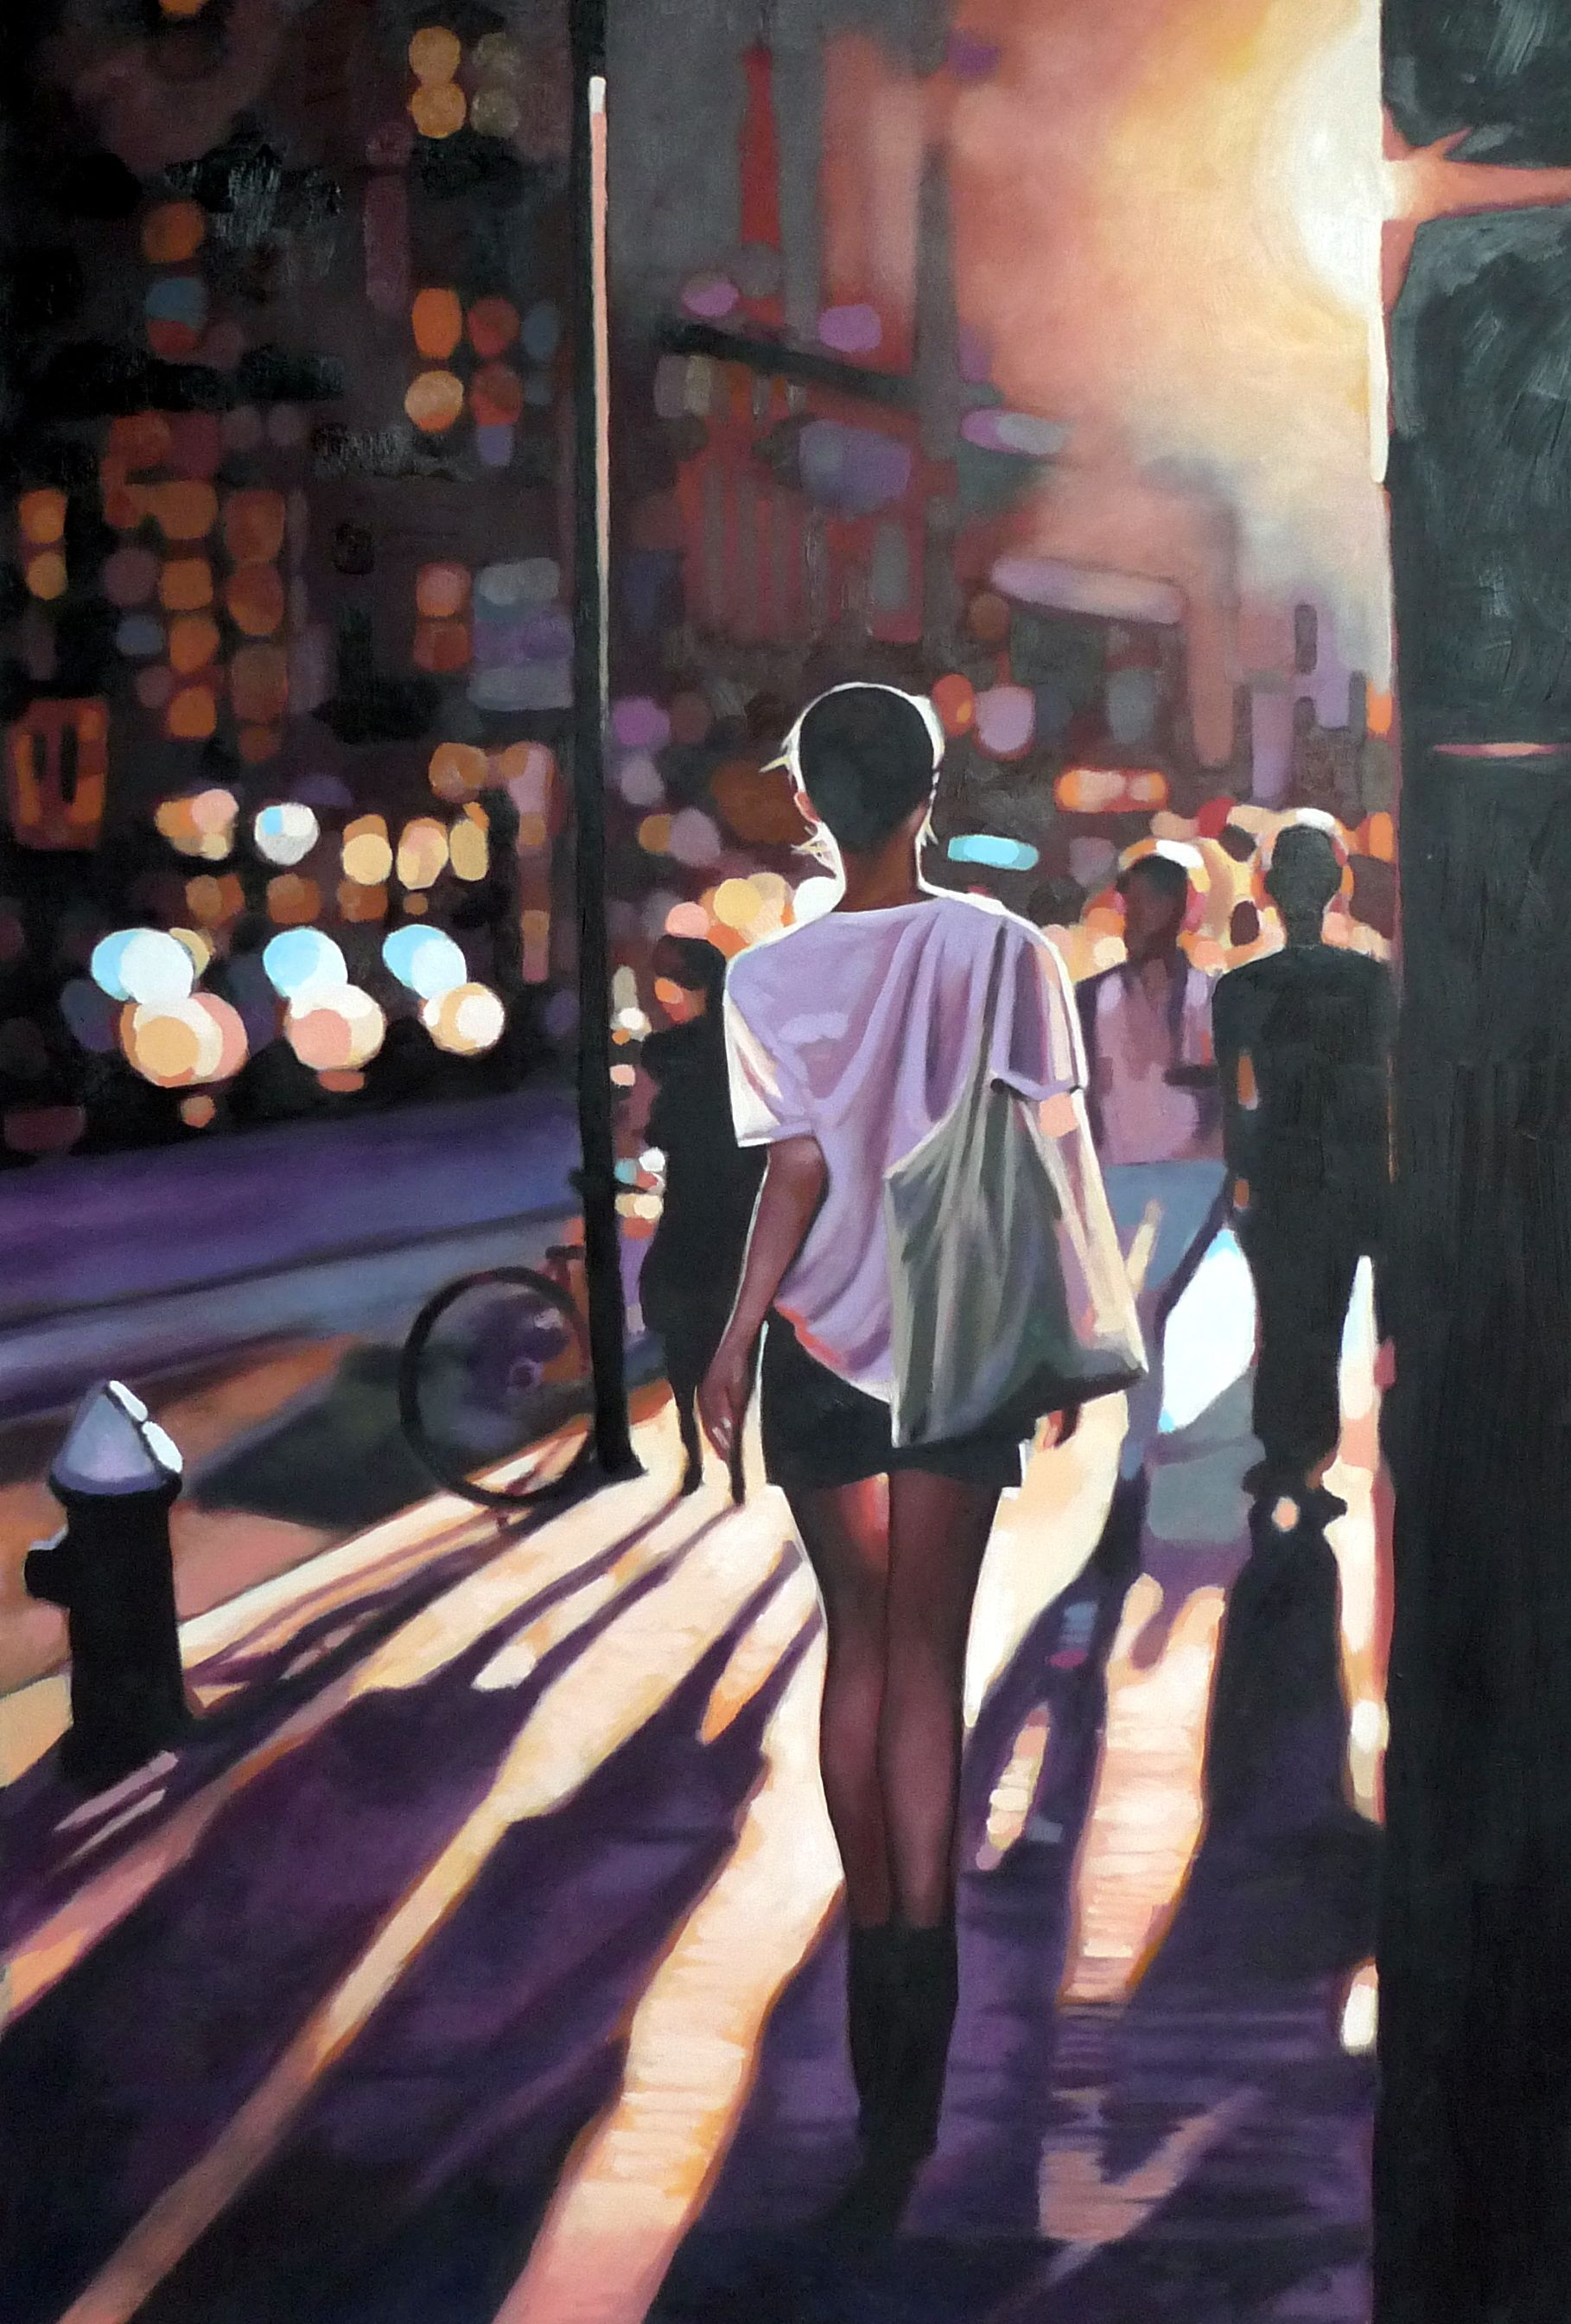 A girl walking in NY street. Oil on Canvas